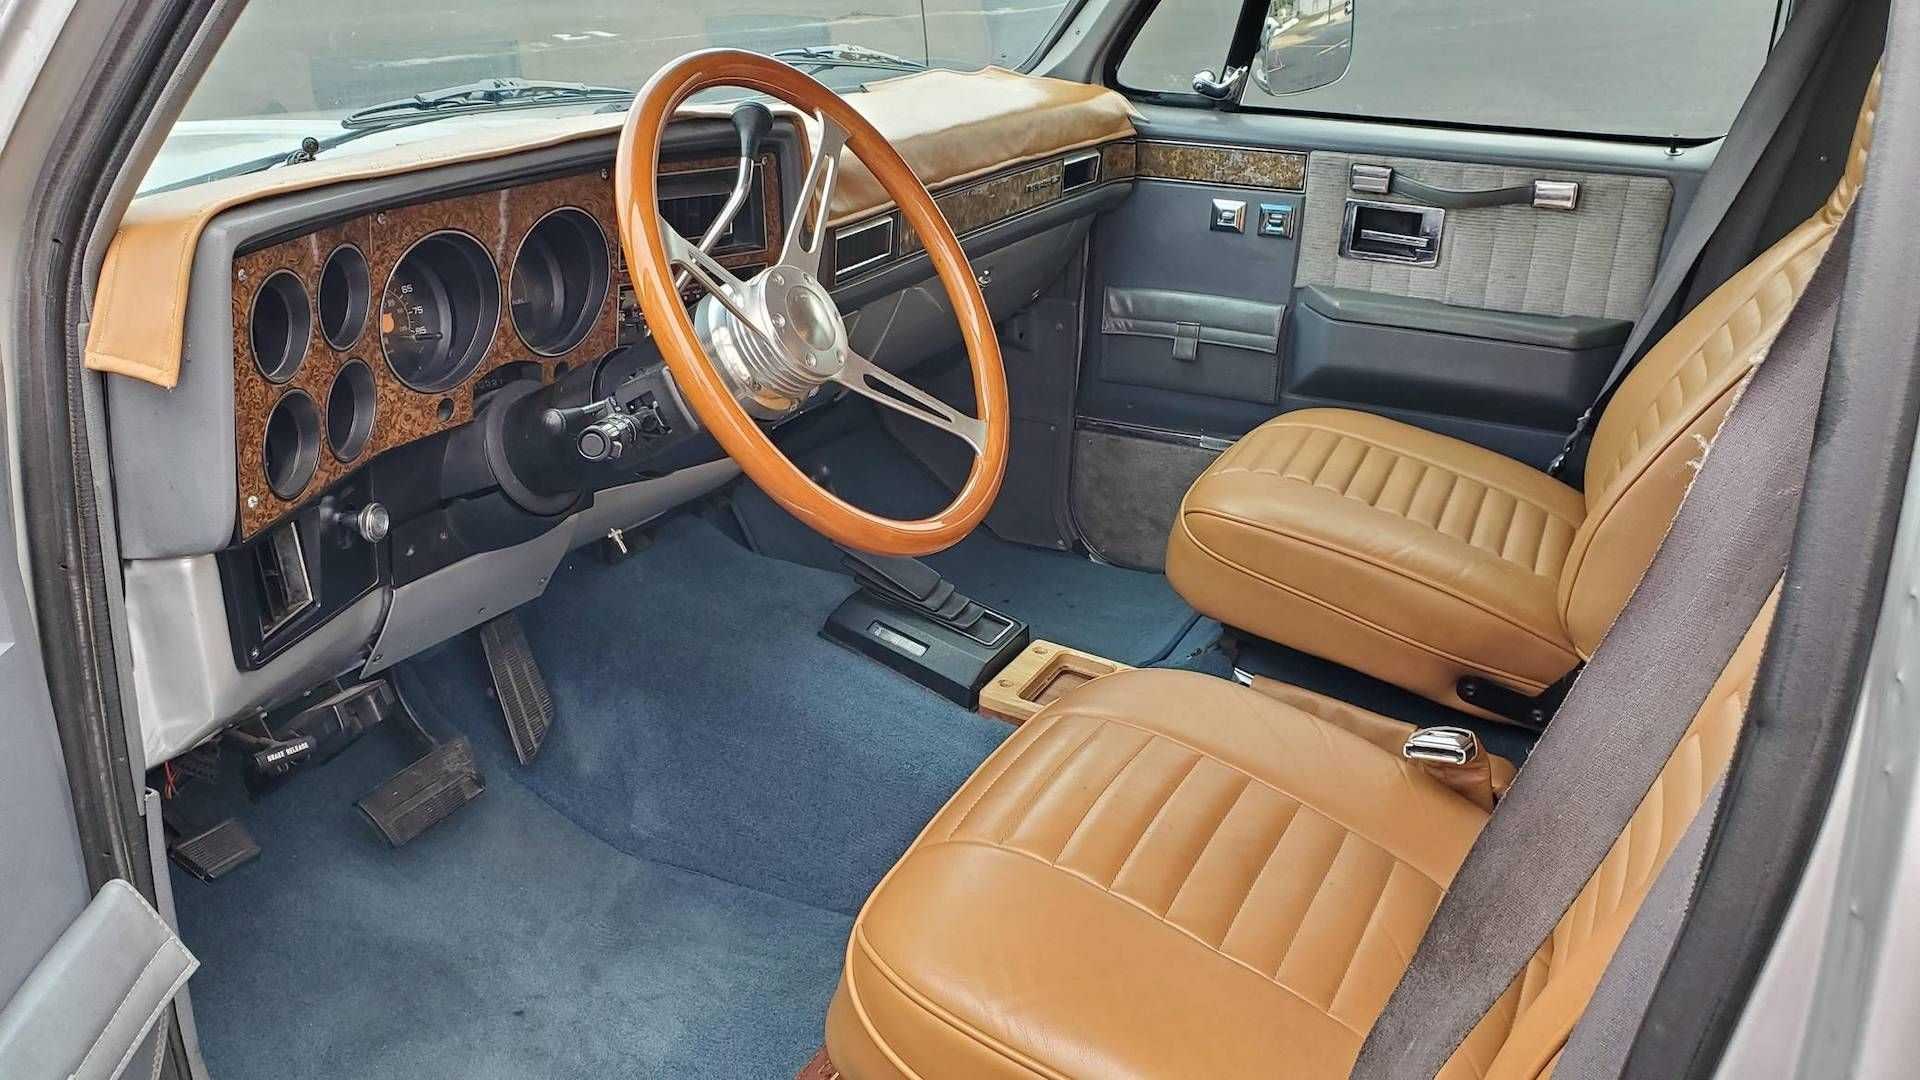 This Good Looking 1989 Chevy Suburban Camper Could Be Yours Automotobuzz Com